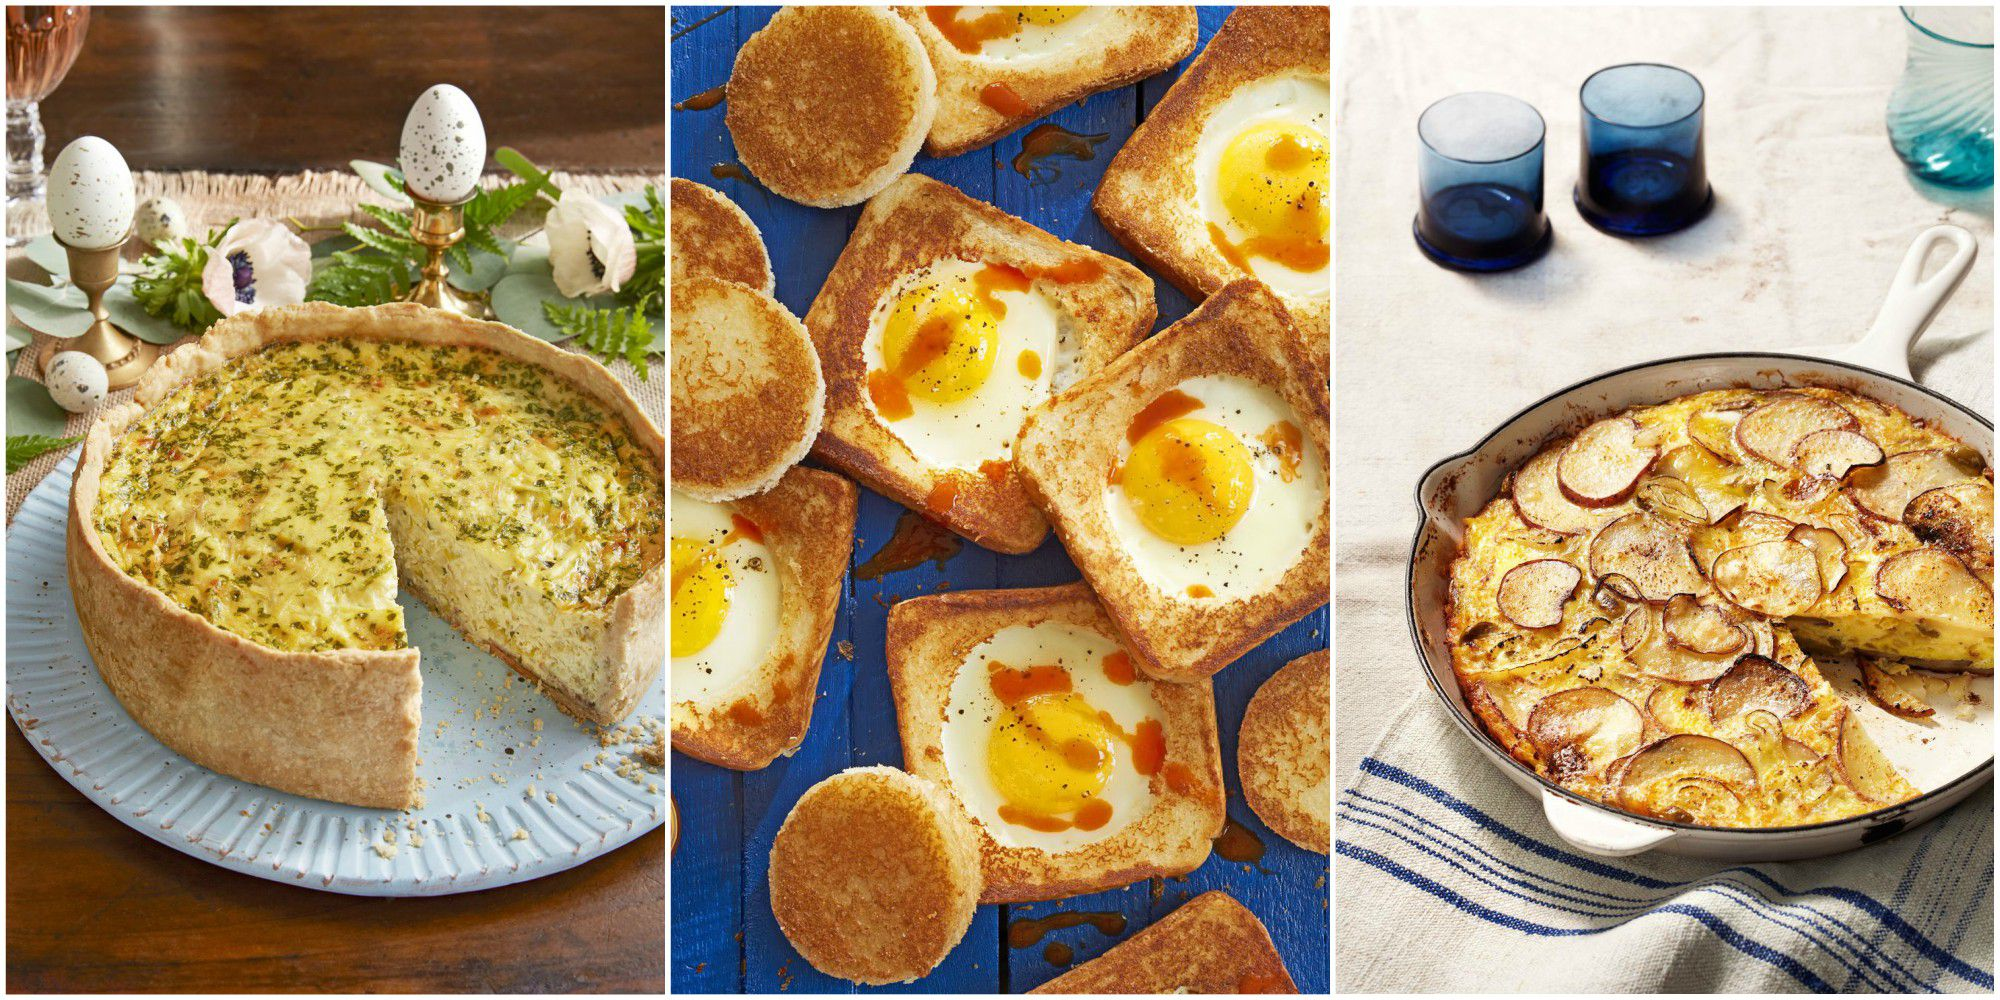 25 Best Egg Recipes - Easy Ways to Cook Eggs